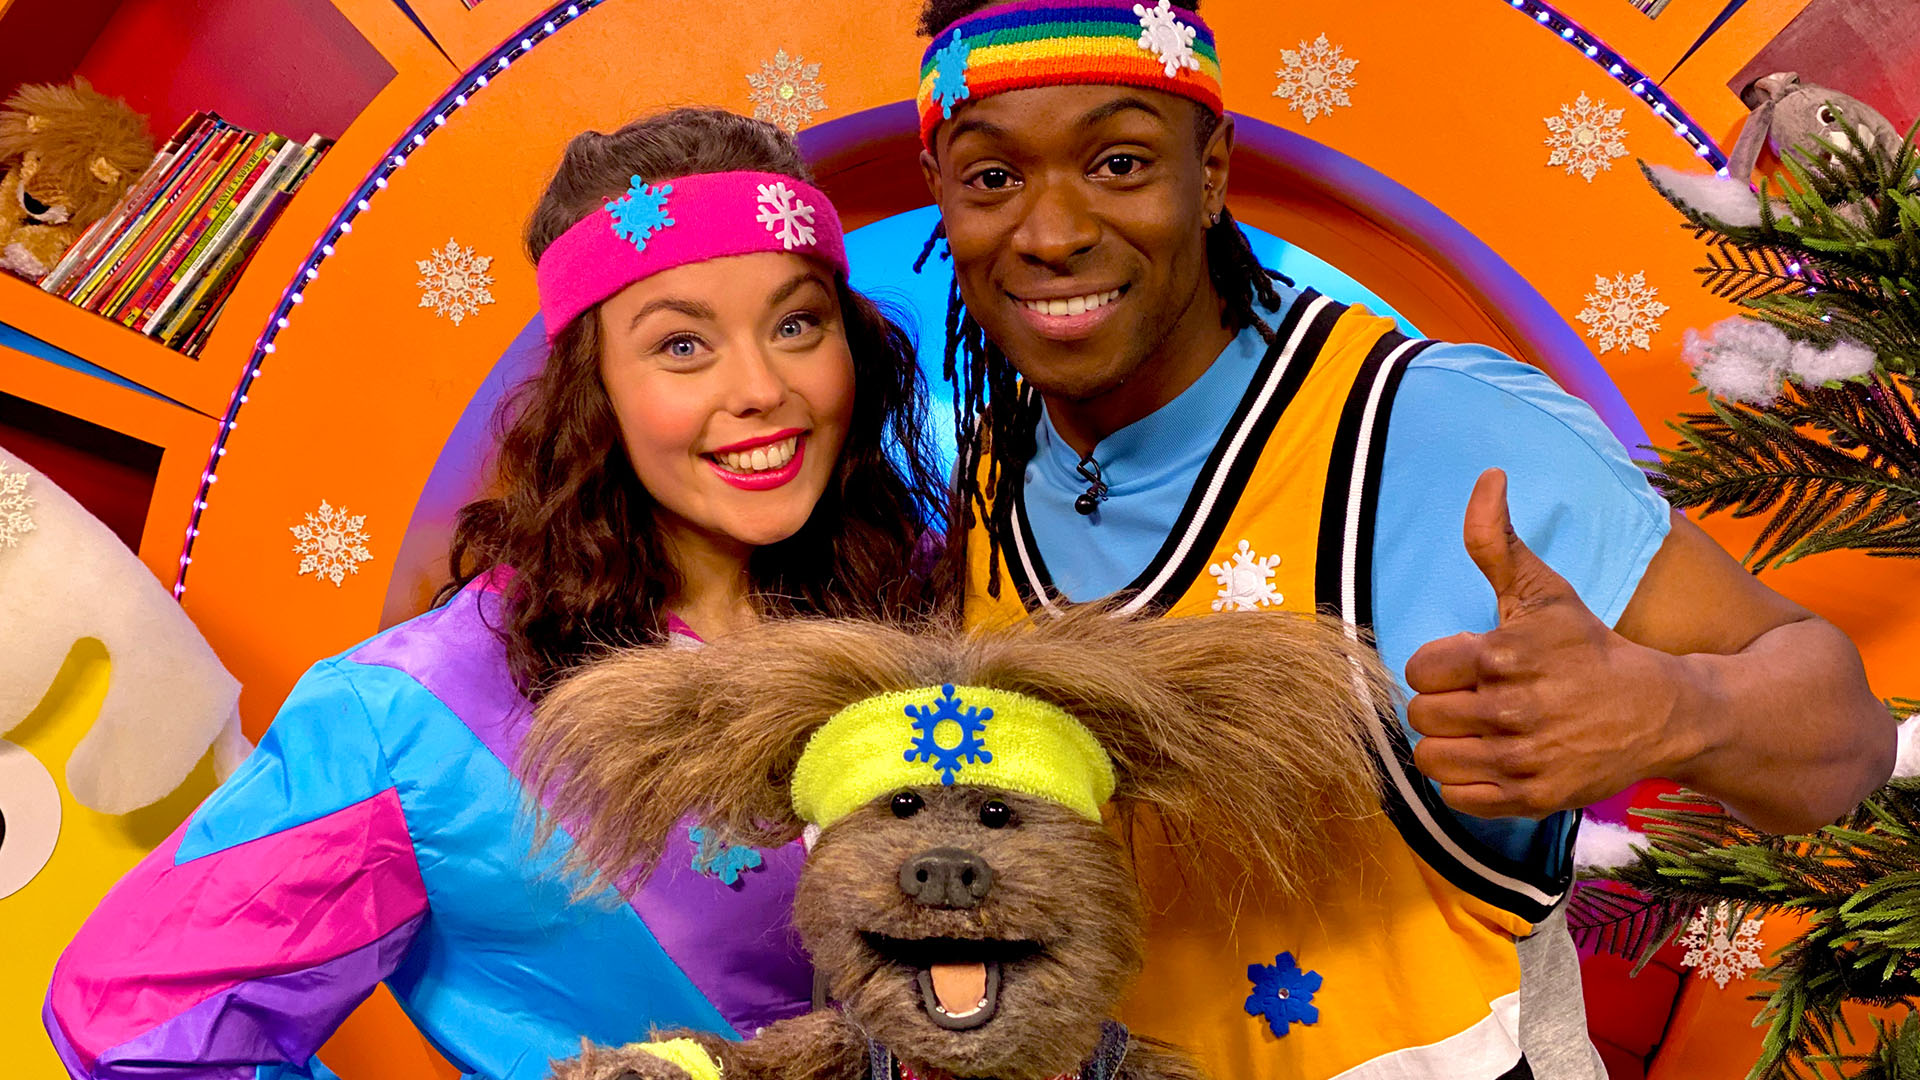 Nigel Clarke Blog - CBeebies Presenter Nigel's favourite moments - Photo with Evie Pickerill, Dodge, Nigel Clarke